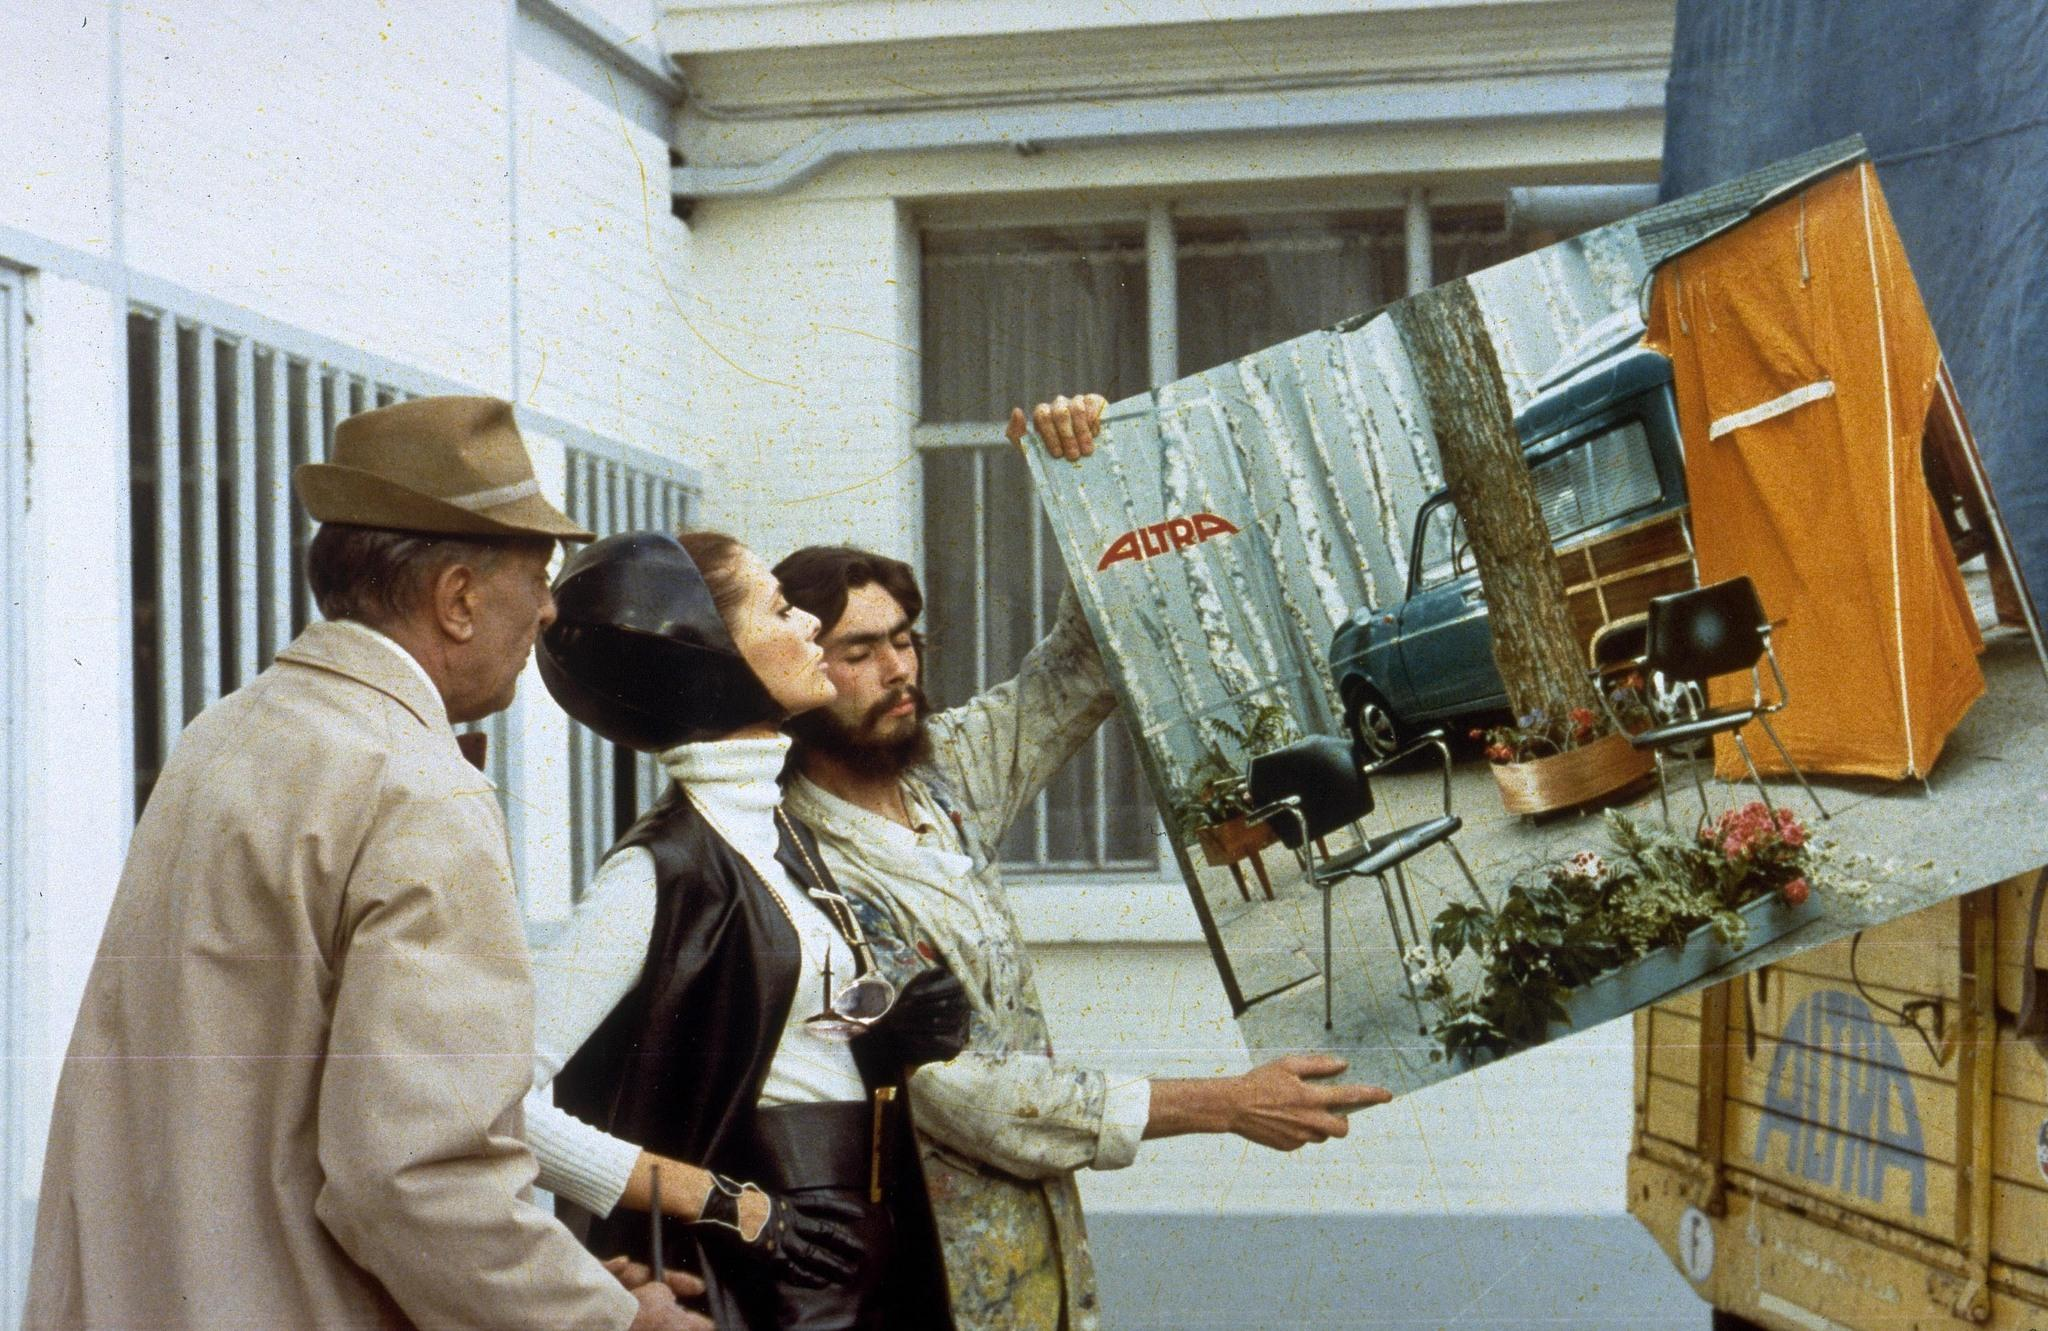 Iconic Jacques Tati Comedies – Potential Films